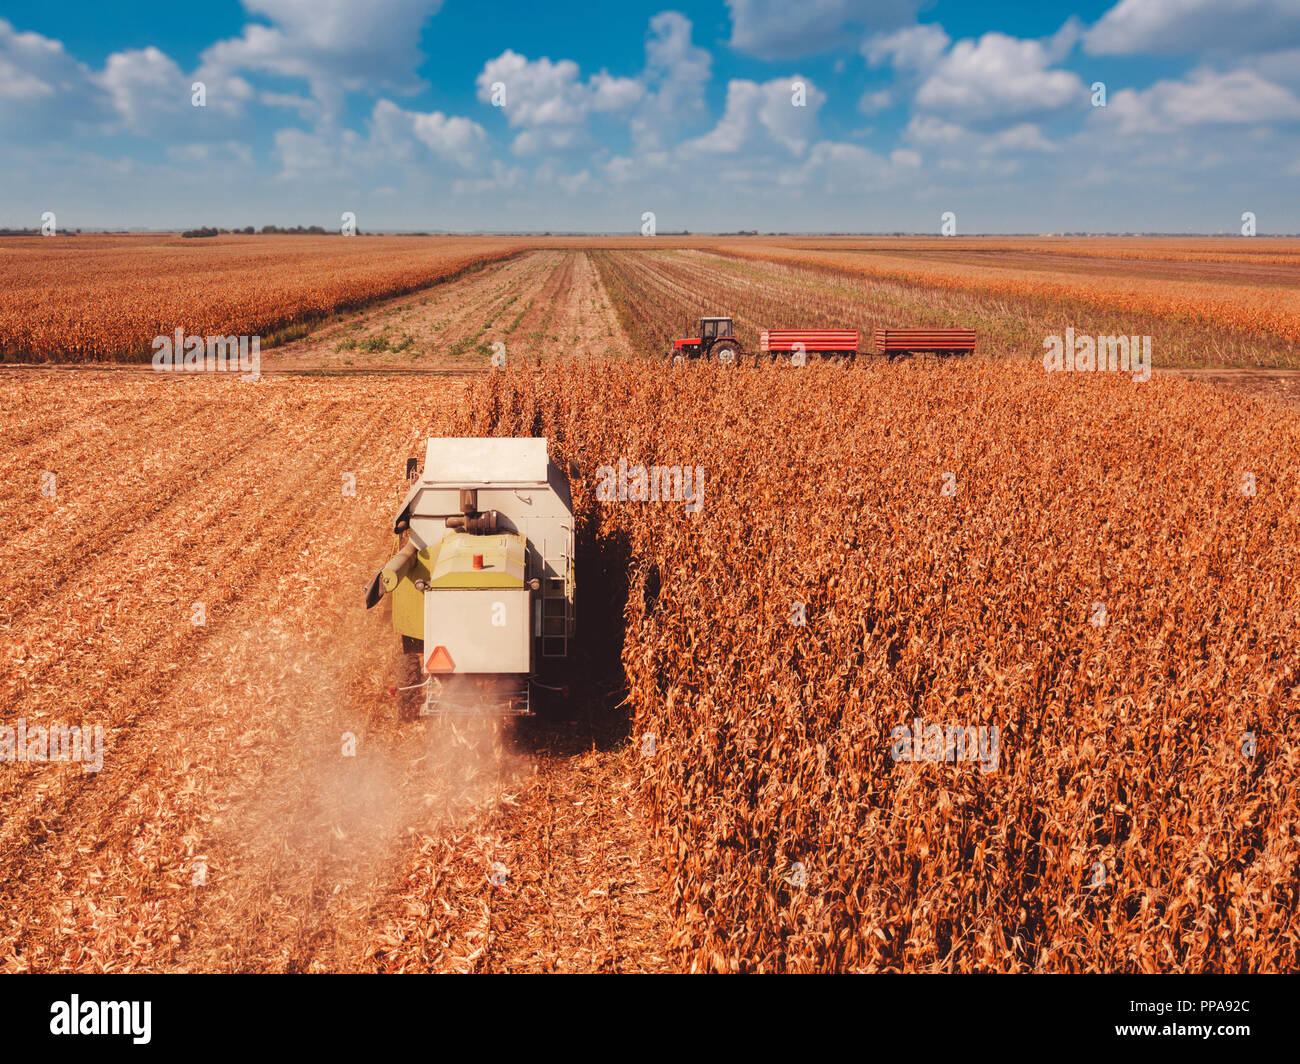 Aerial photography of combine harvester harvesting corn crop field from drone point of view - Stock Image